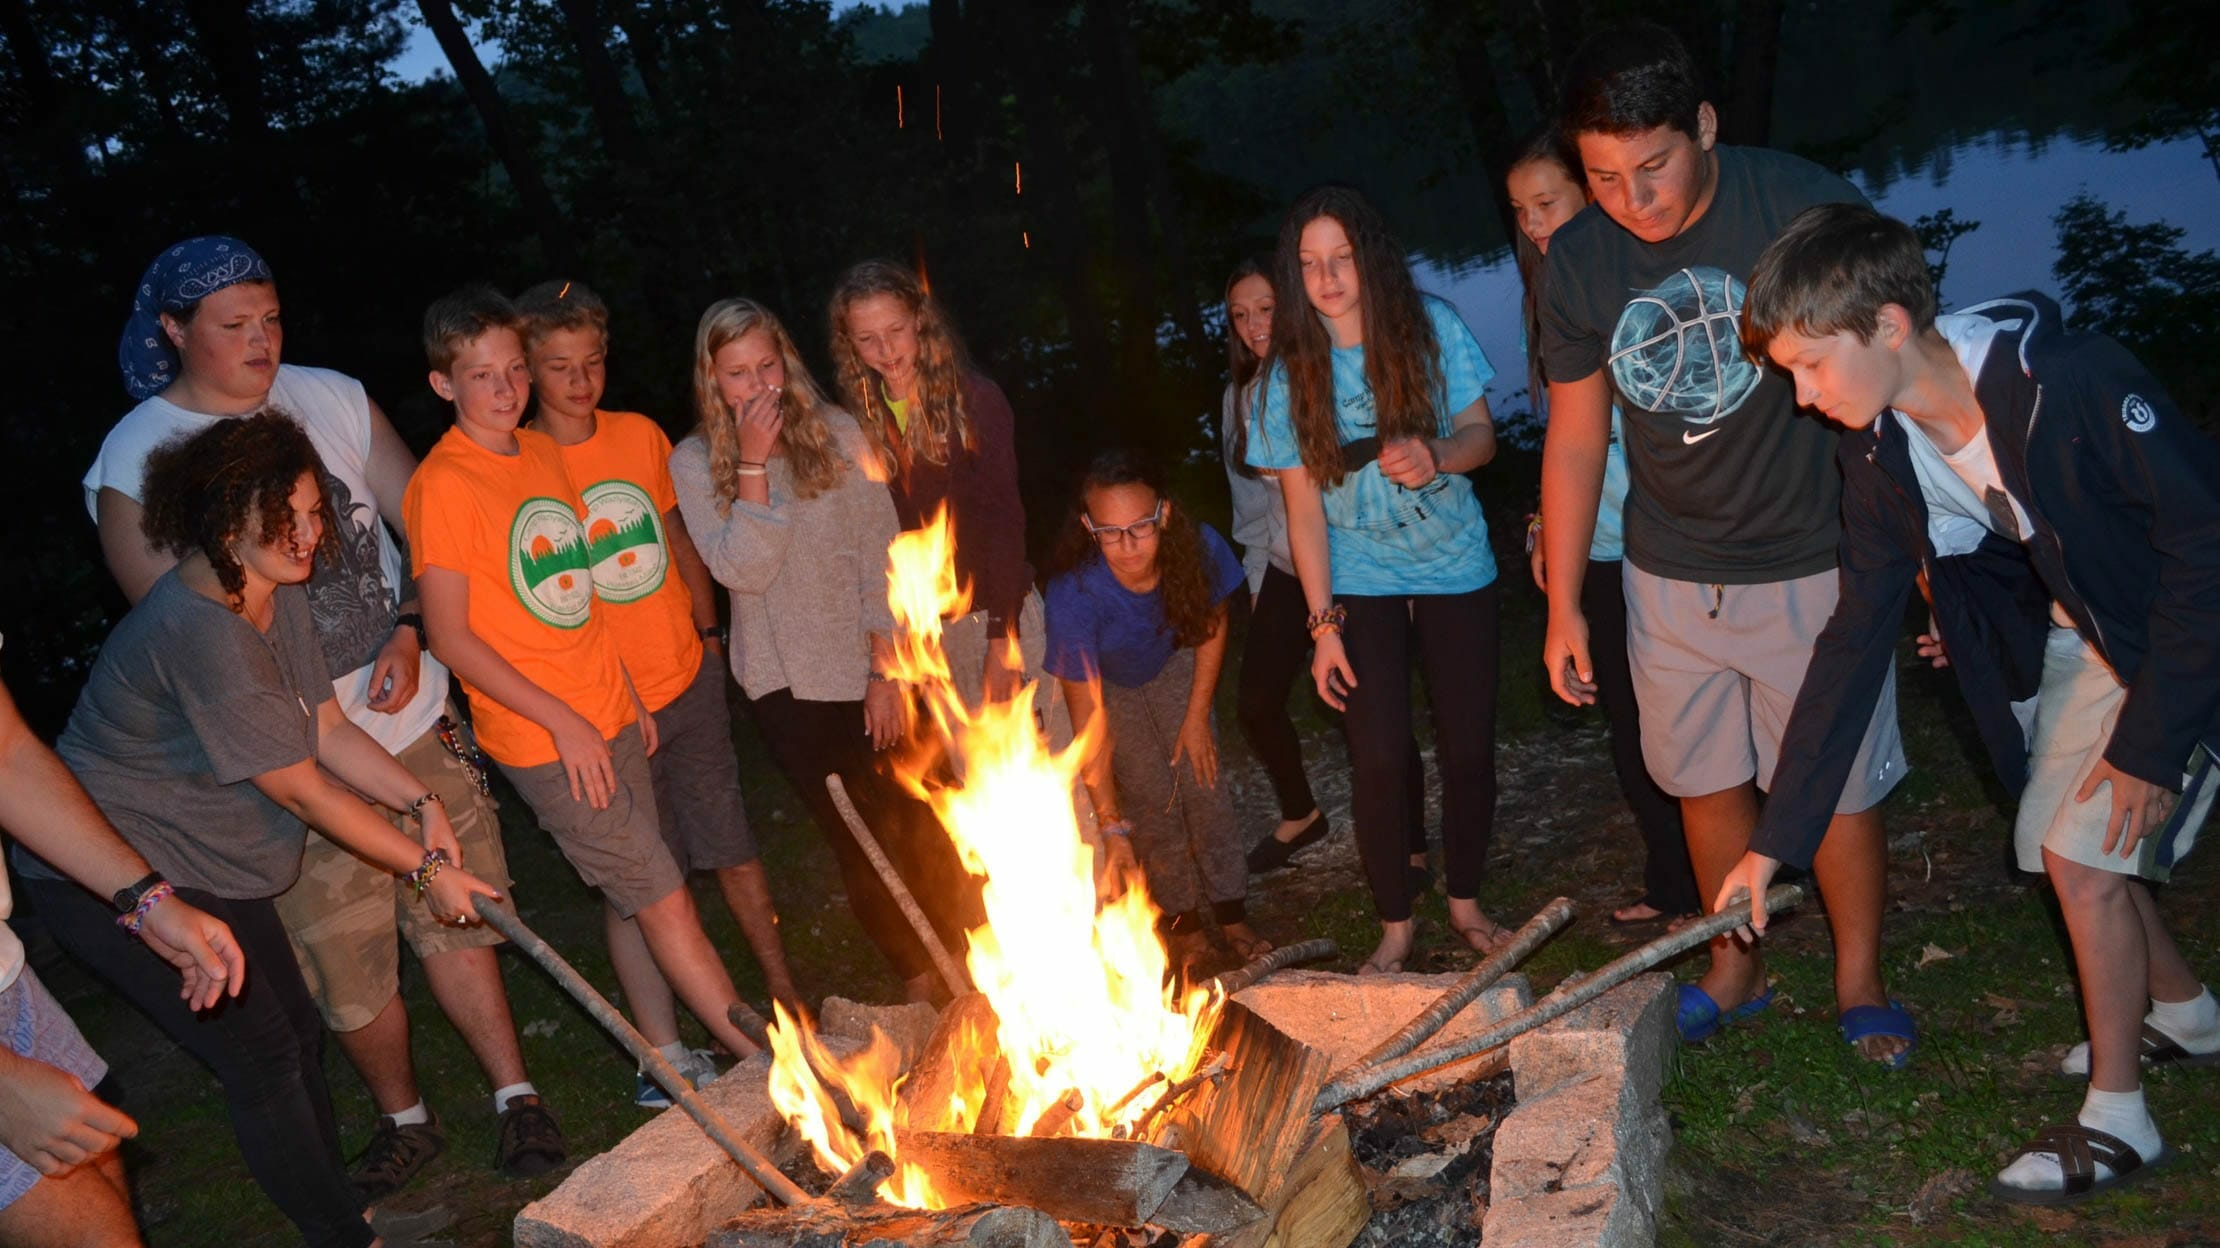 Campers at campfire roasting marshmallows